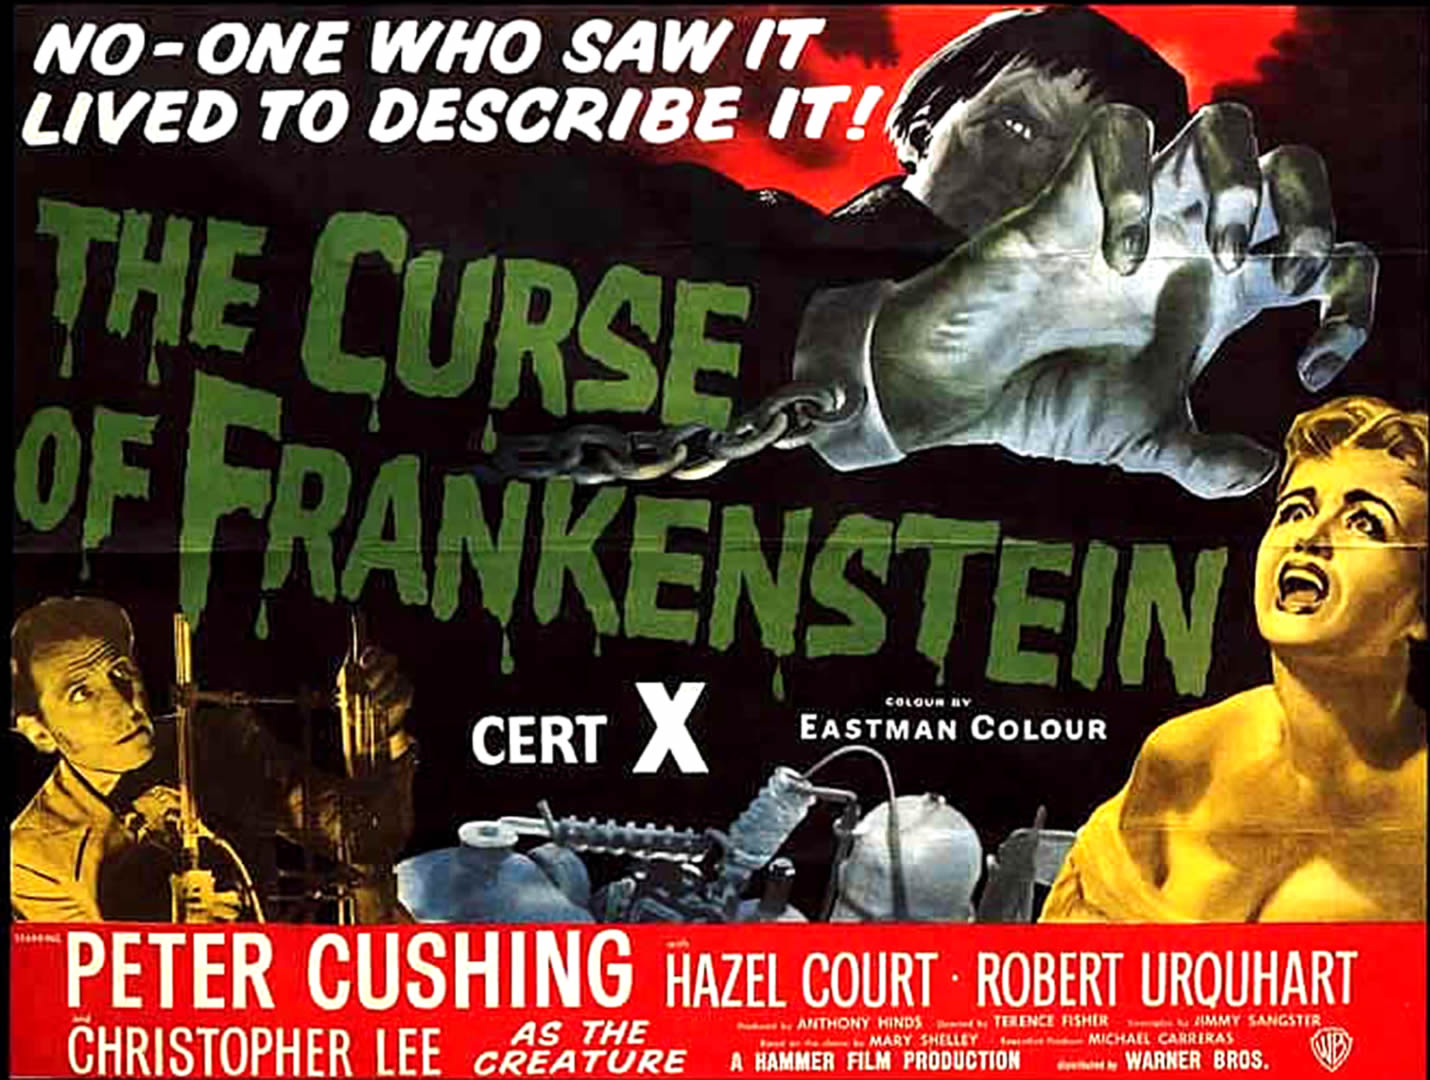 THE CURSE OF FRANKENSTEIN 4